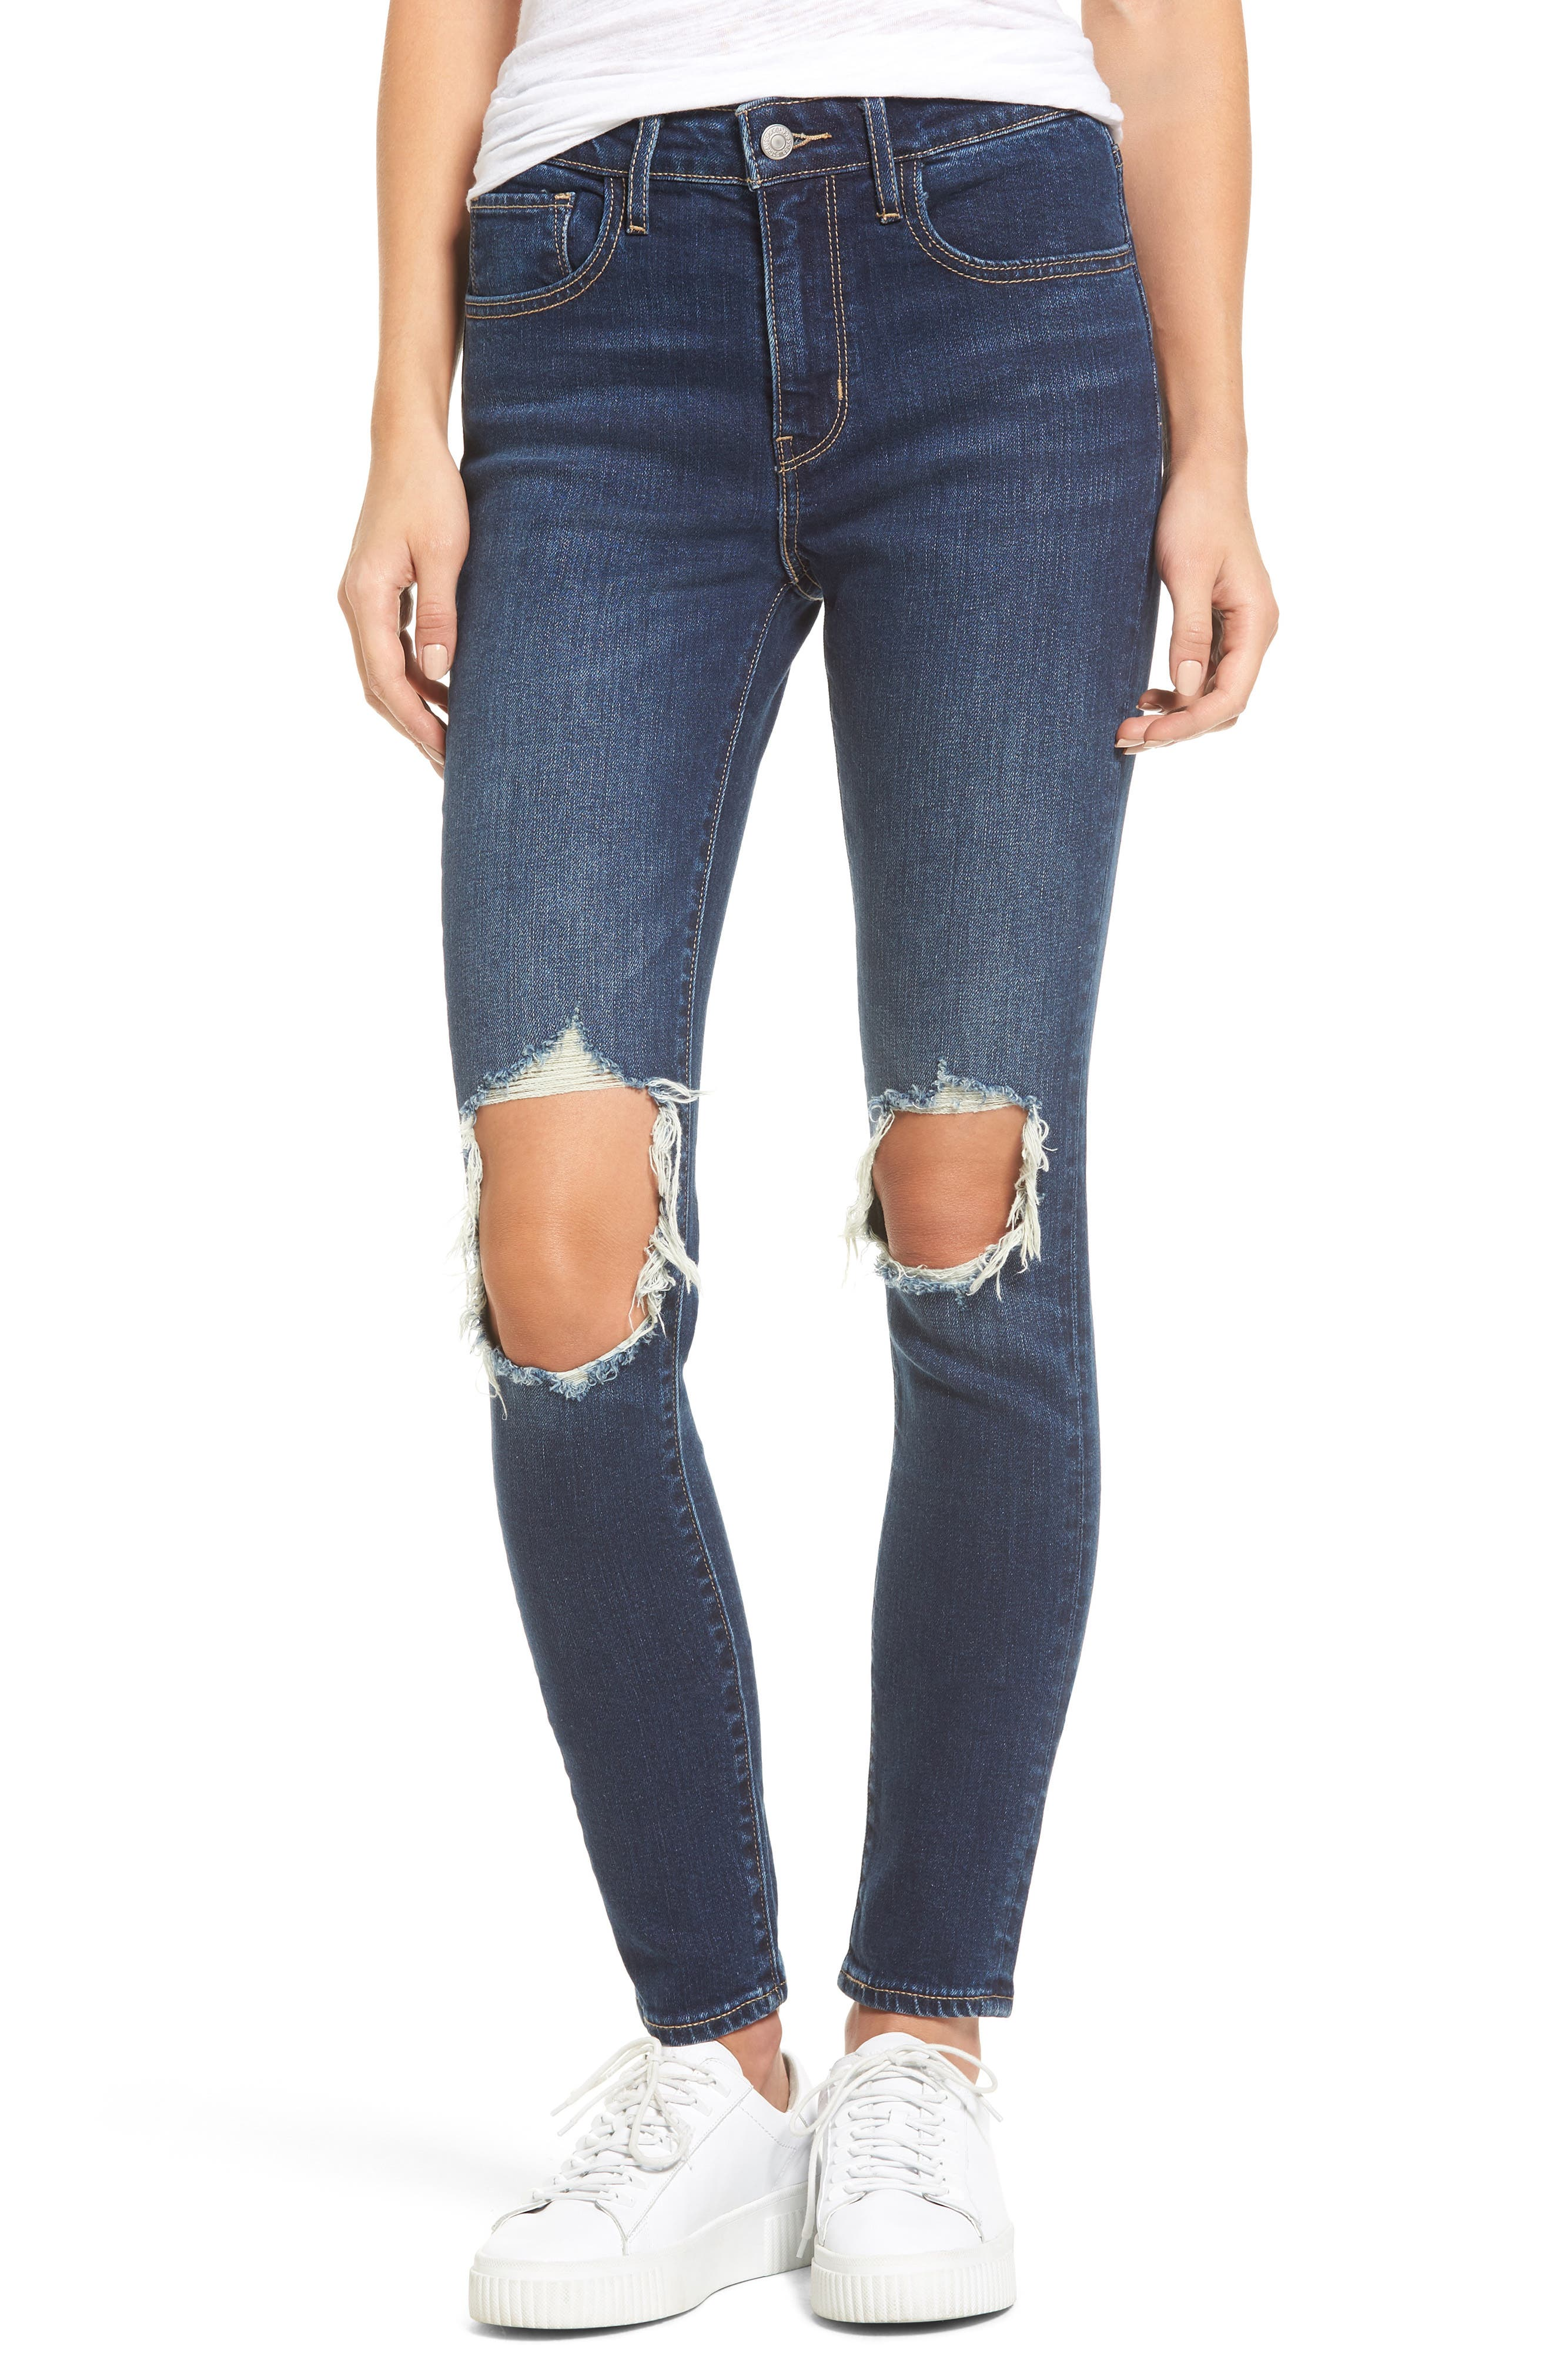 721 Ripped High Waist Skinny Jeans,                         Main,                         color, Rough Day